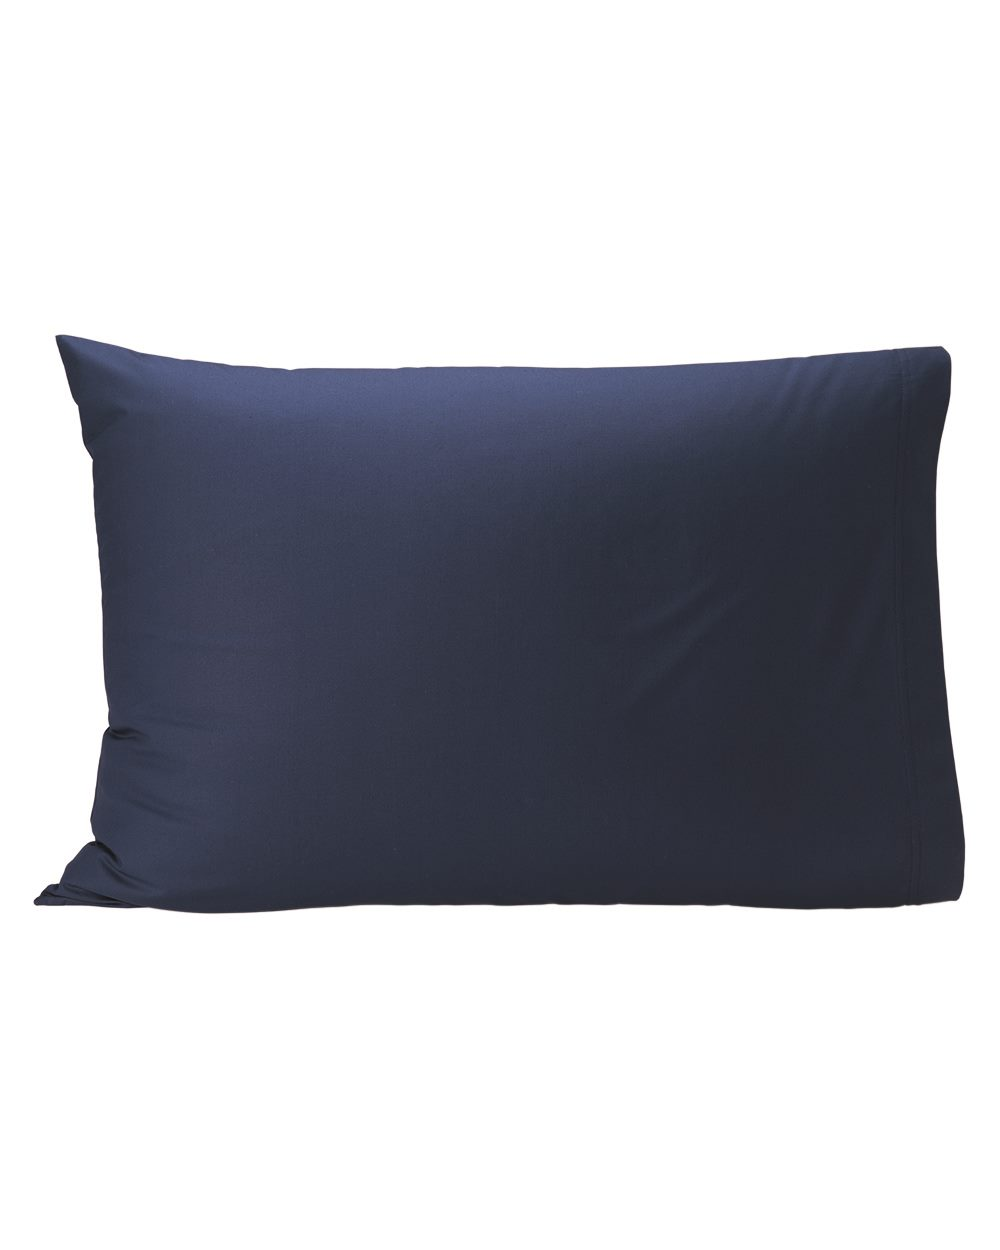 Boxercraft C100 - Pillow Case